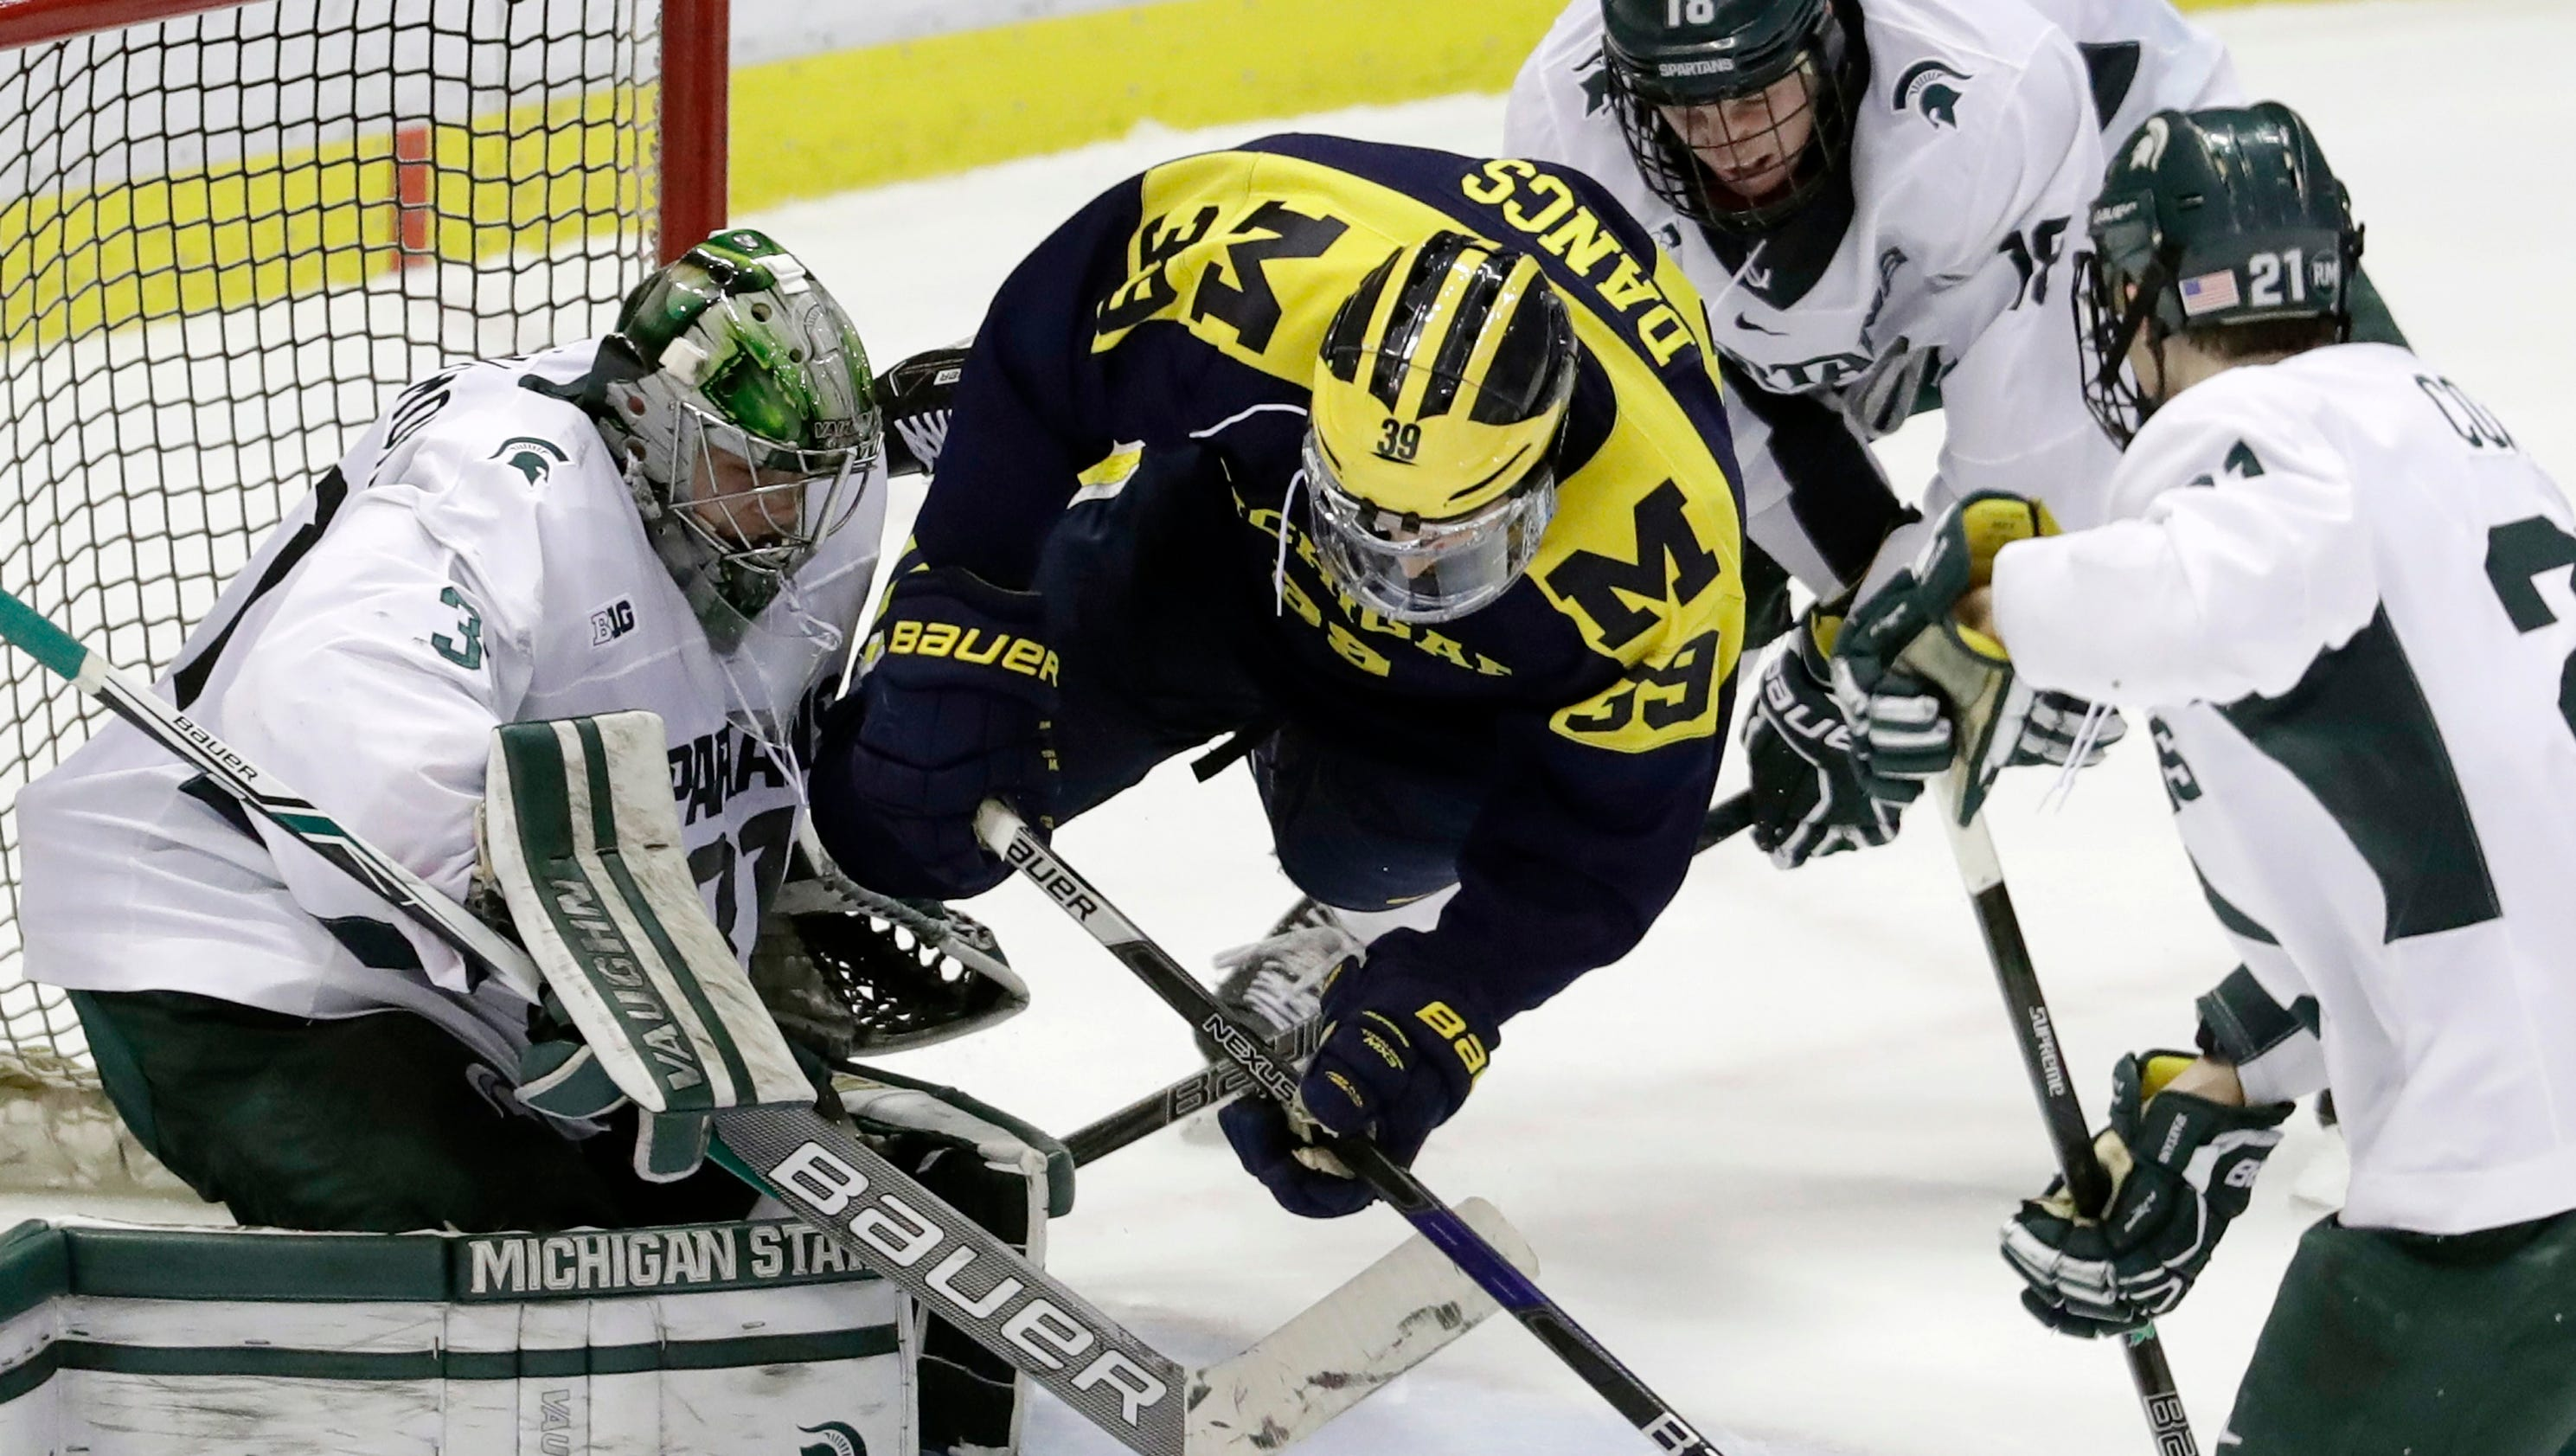 636204643888549756-ap-michigan-michigan-st-hock